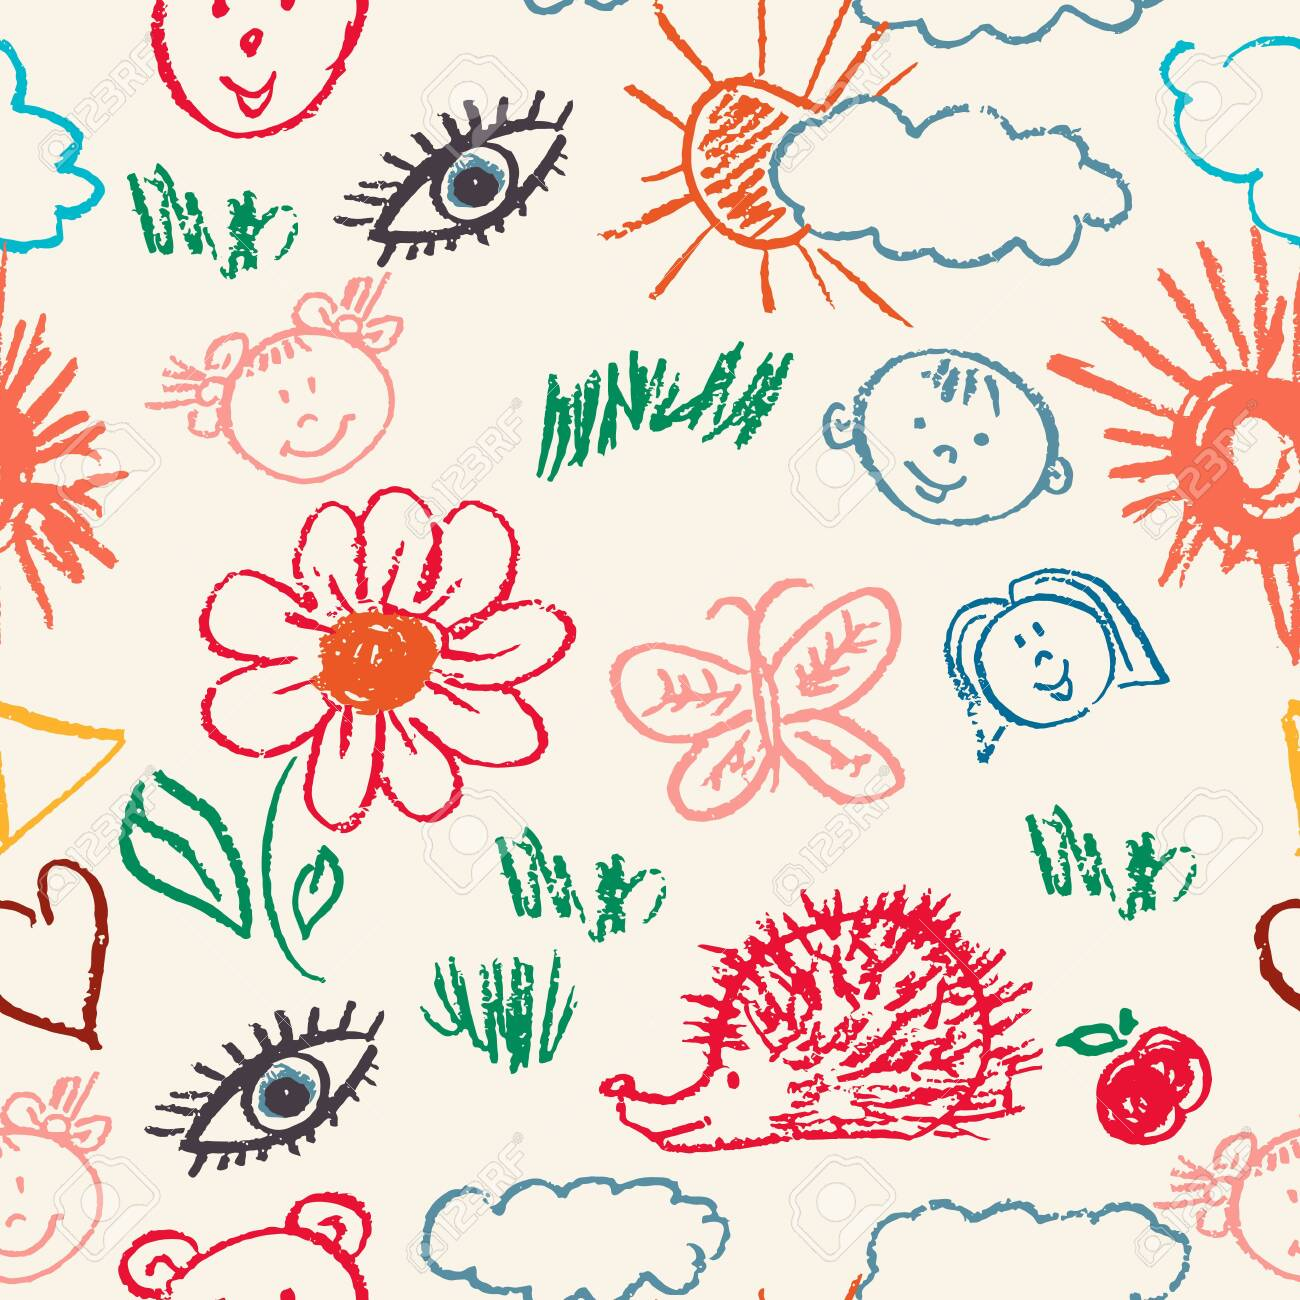 Seamless pattern  Draw pictures, doodle  Beautiful and bright